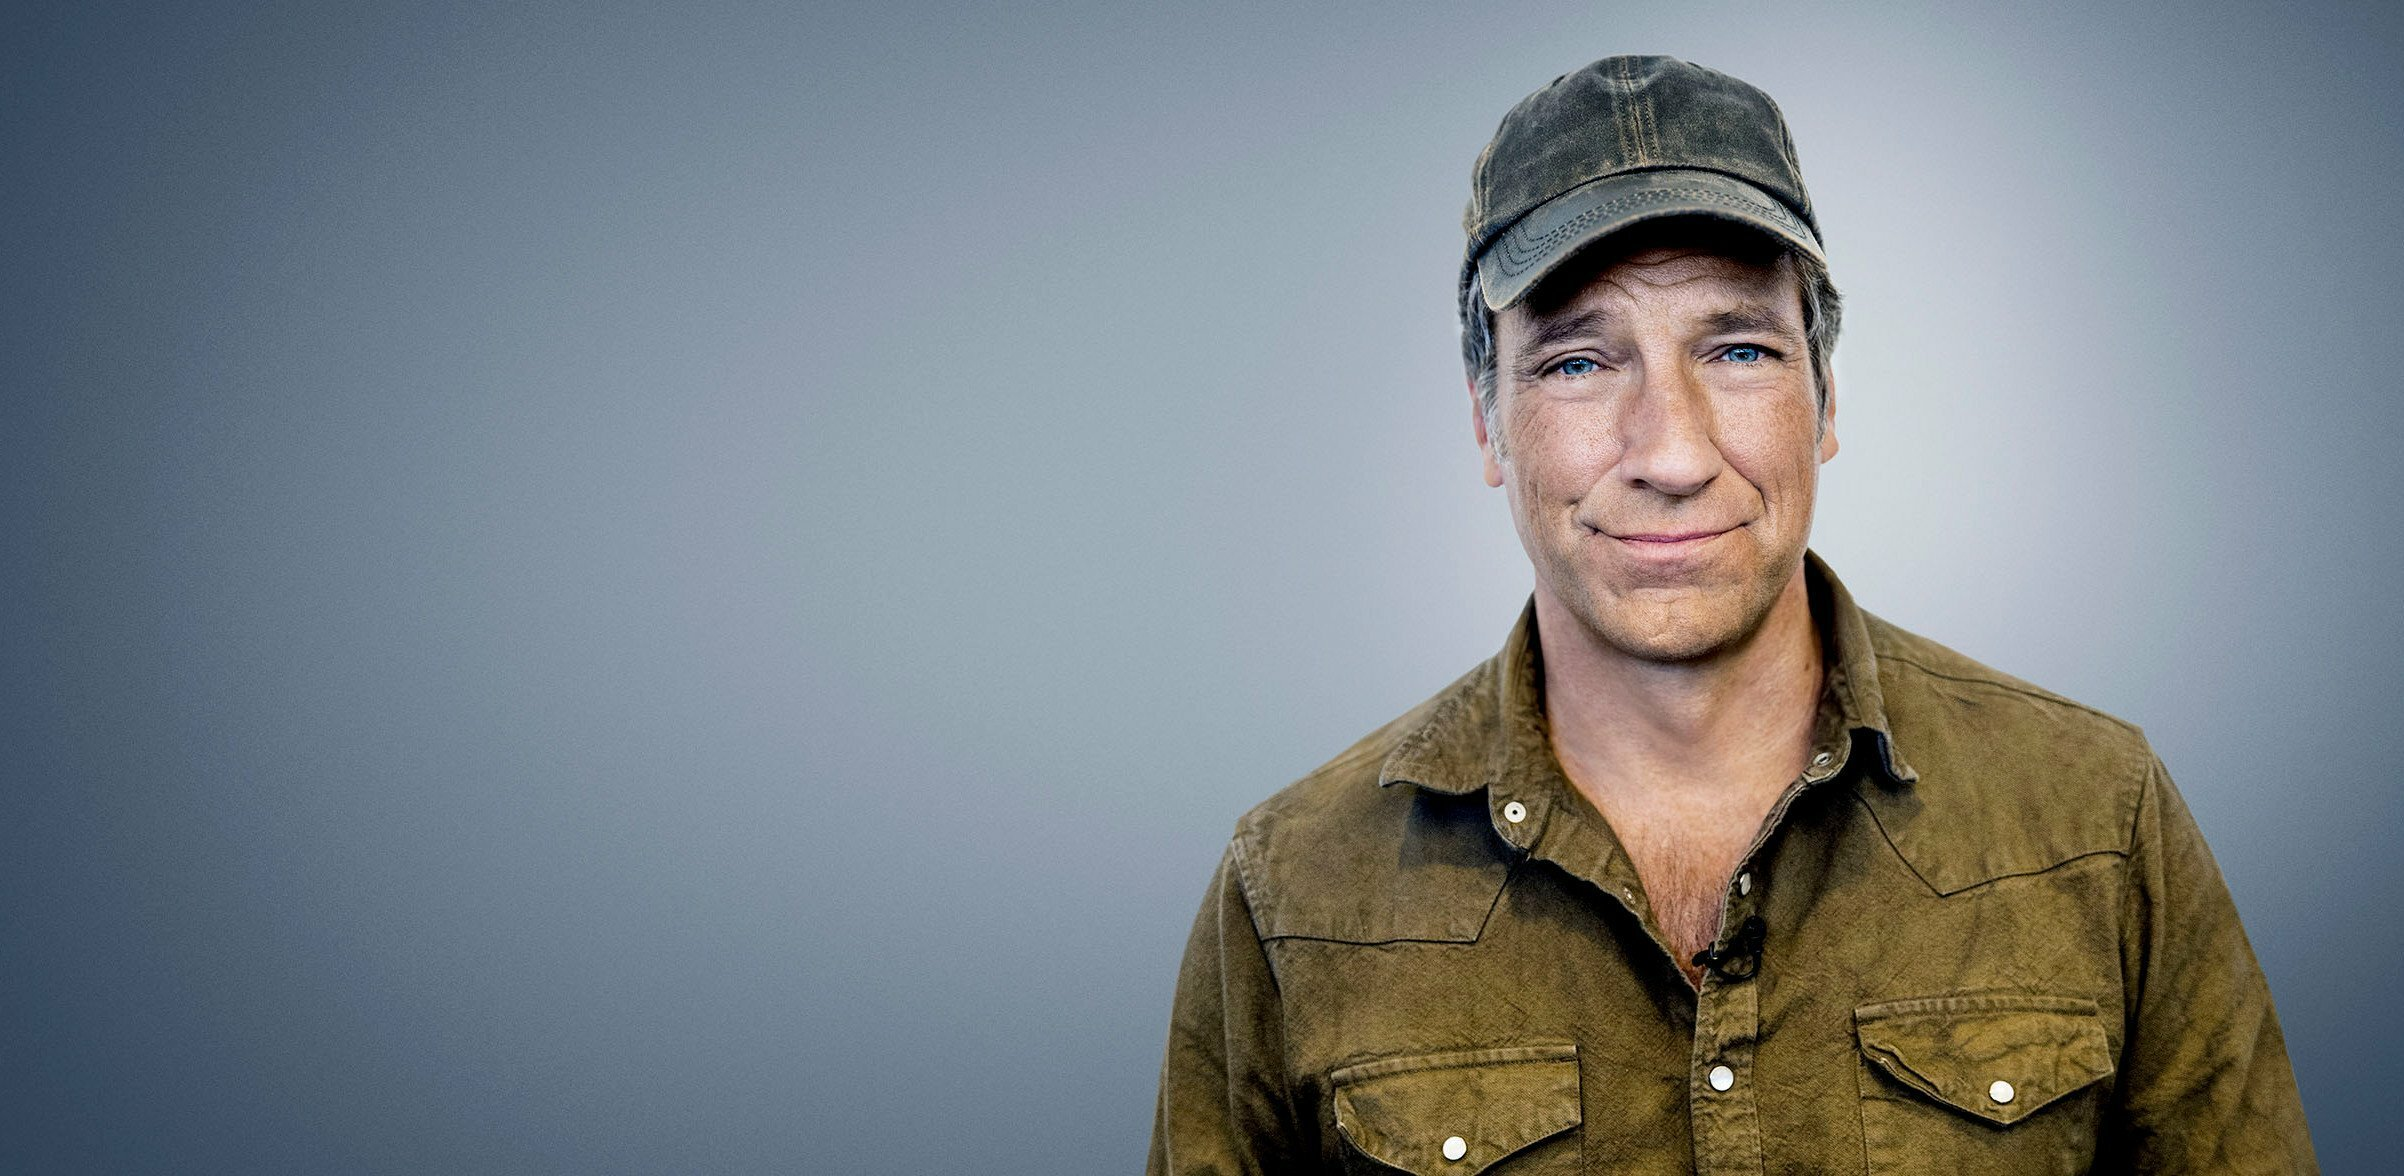 5 Ways You Can Find Success at Any Job, According to Dirty Jobs' Mike Rowe